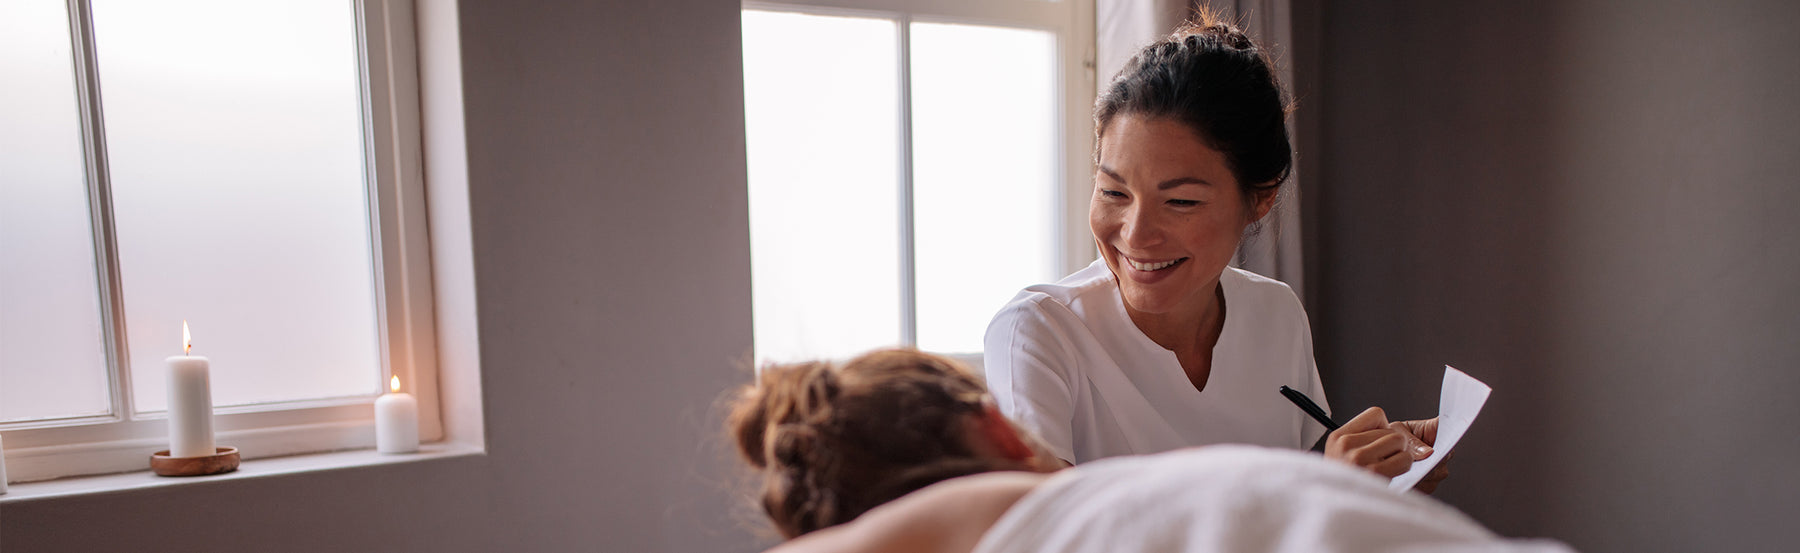 What Should Massage Therapists Learn About New Clients?